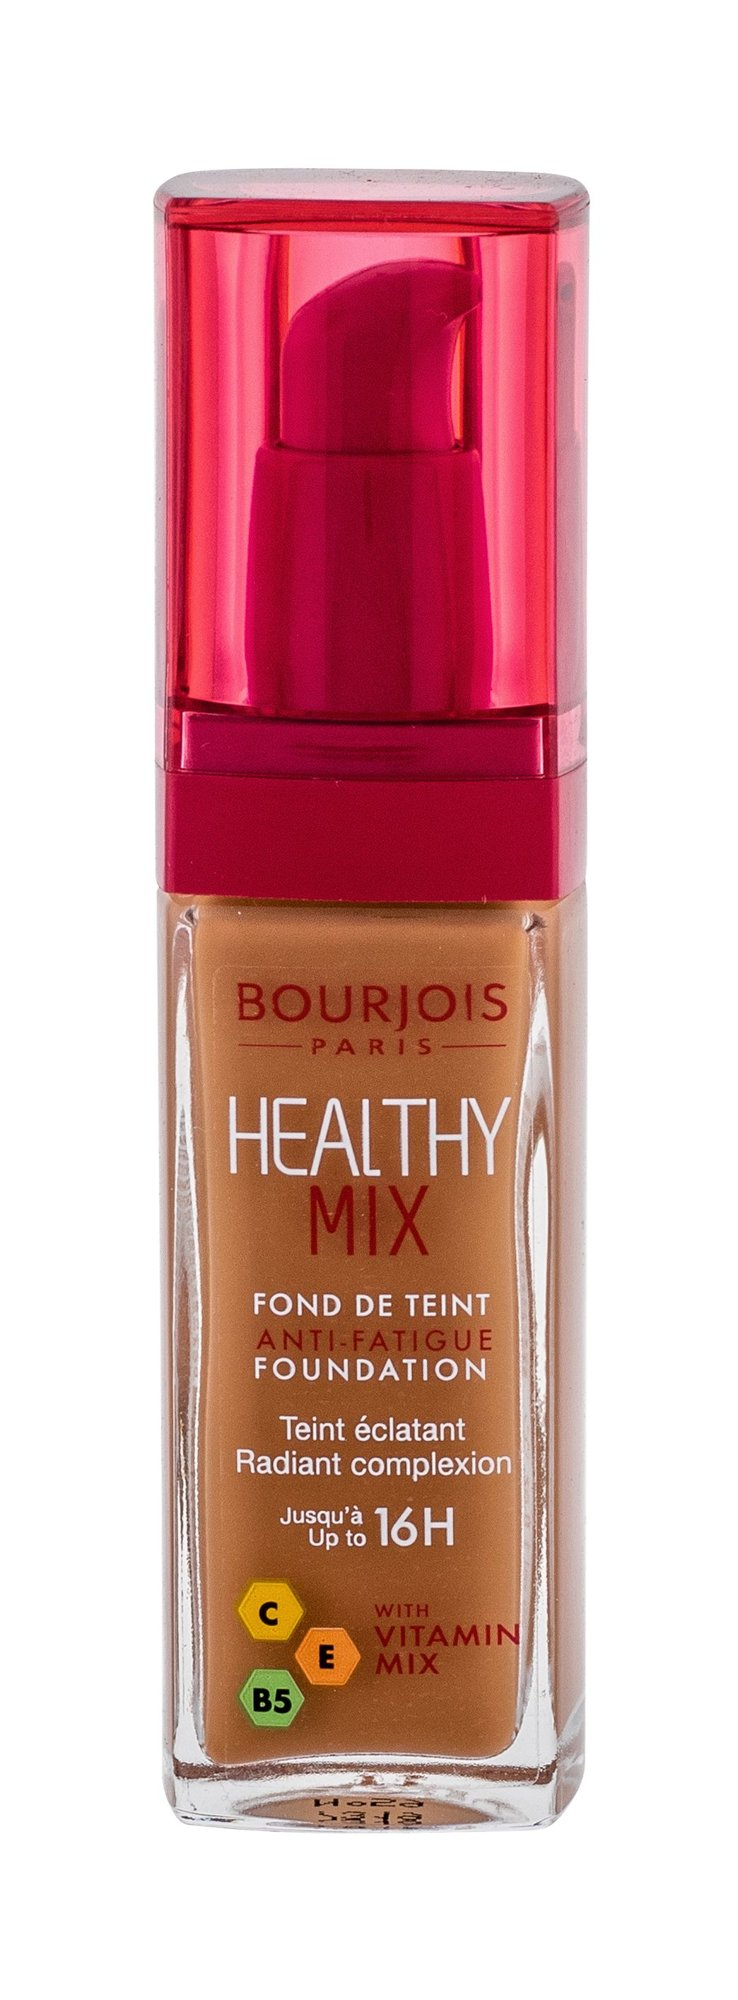 BOURJOIS Paris Healthy Mix Makeup 30ml 59 Amber